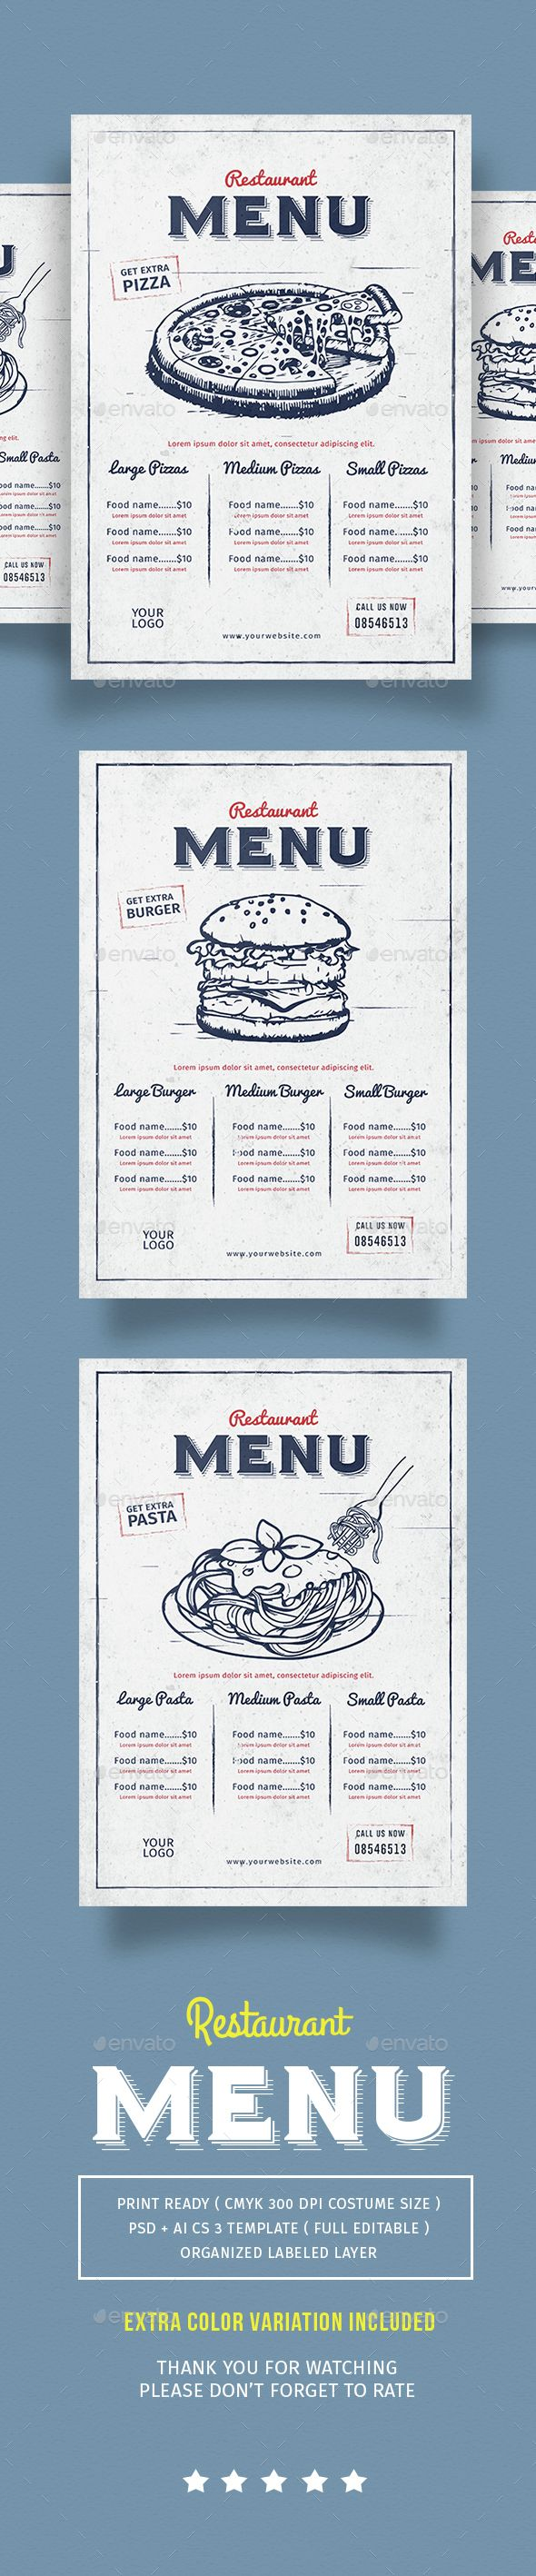 Vintage Restaurant Menu Template PSD, Vector AI. Download here: http://graphicriver.net/item/vintage-restaurant-menu/14567397?ref=ksioks